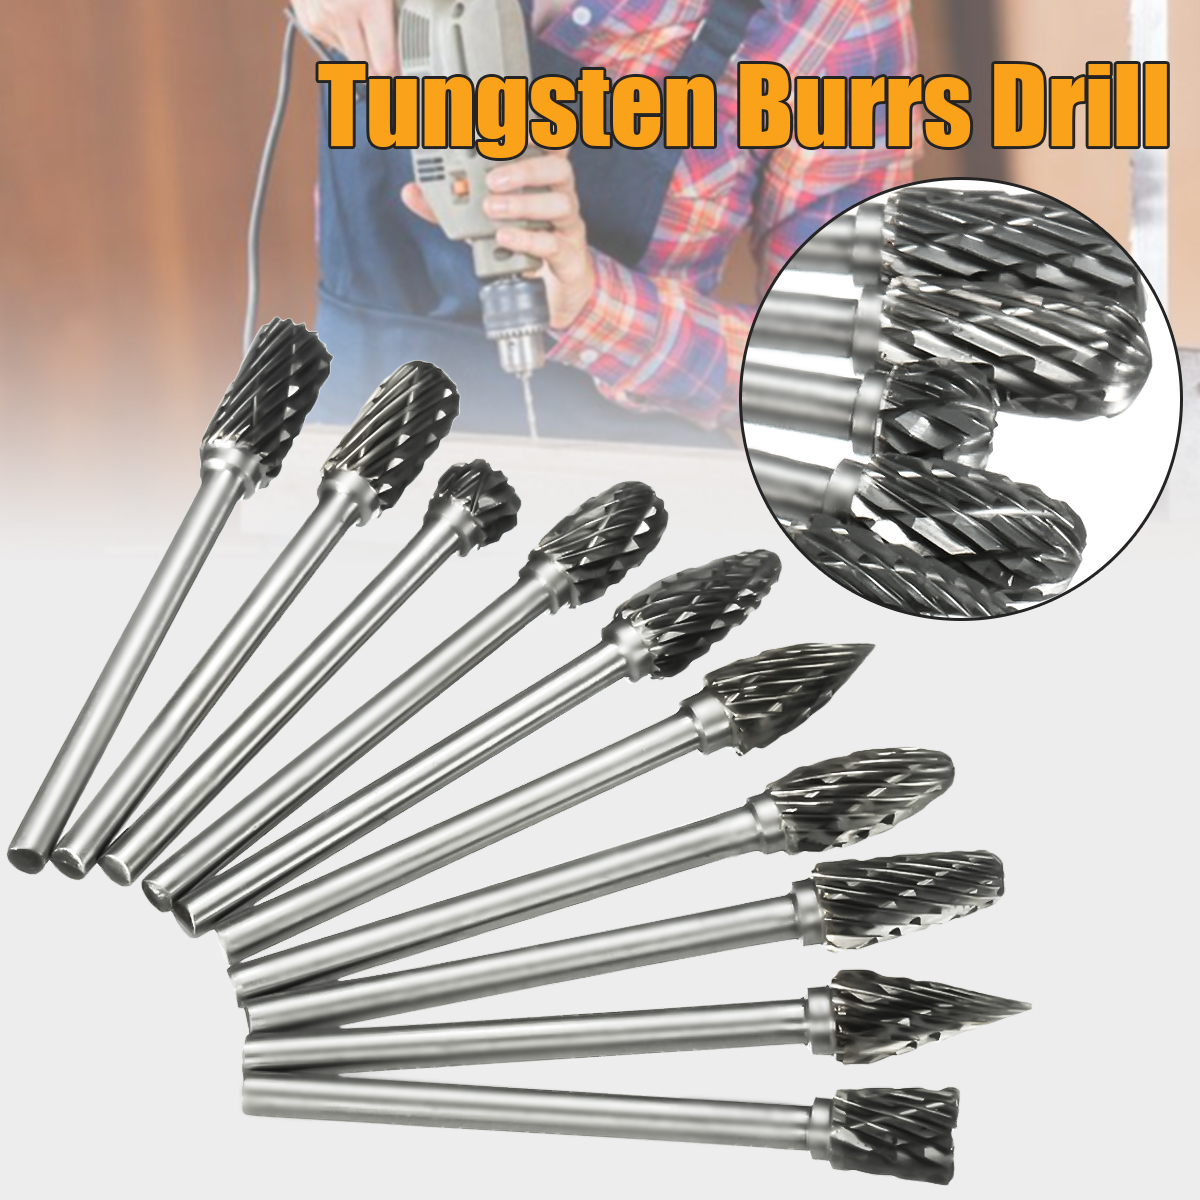 1pcs 10 Model Tungsten Steel Solid Carbide Burrs Rotary Files Diamond Burrs PCB CNC Drill Bit Tool 6mm Hand Tools